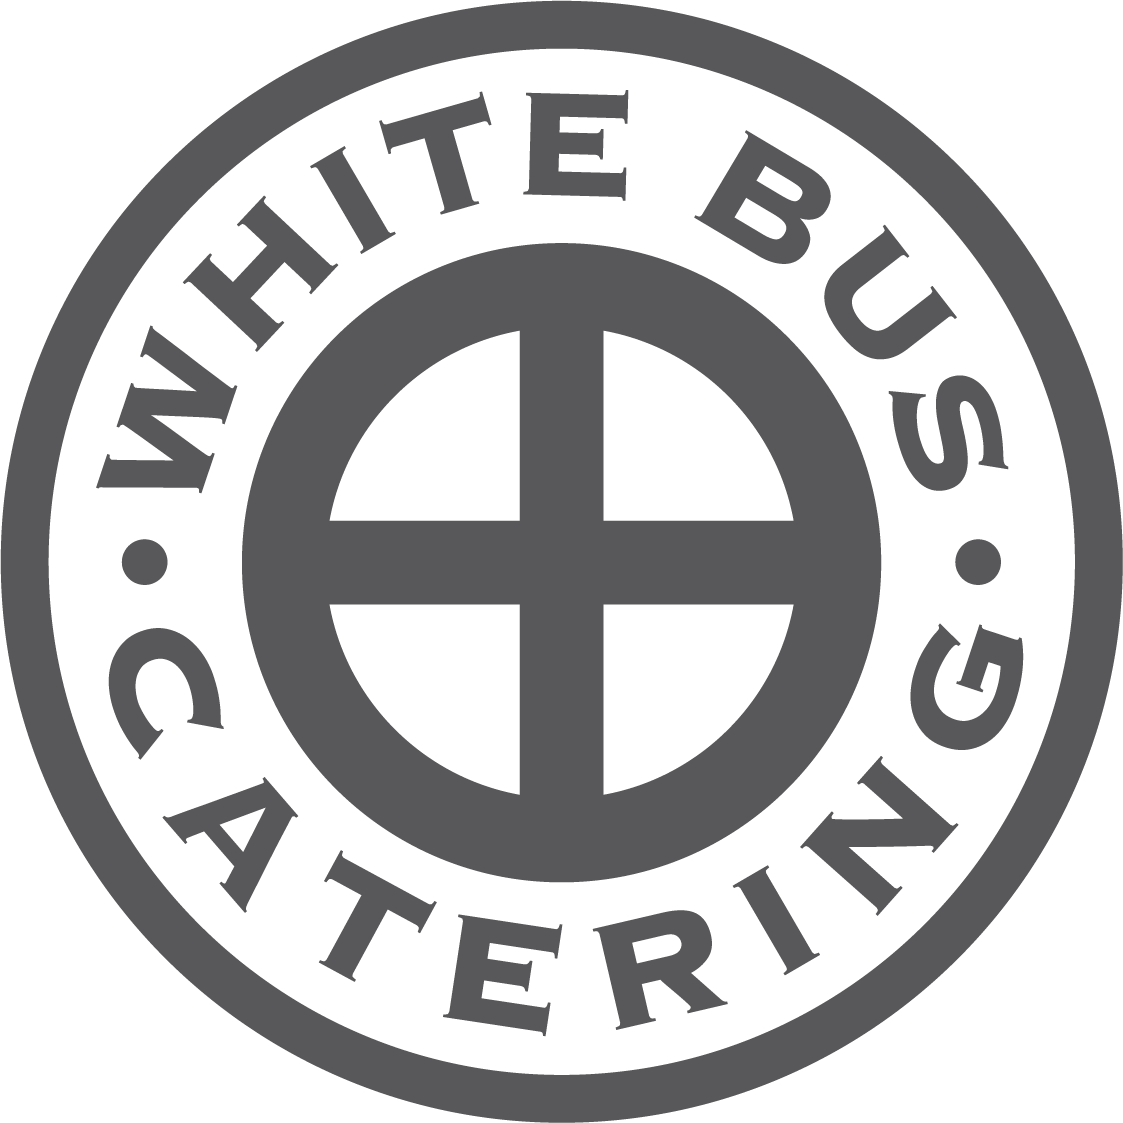 White Bus Catering